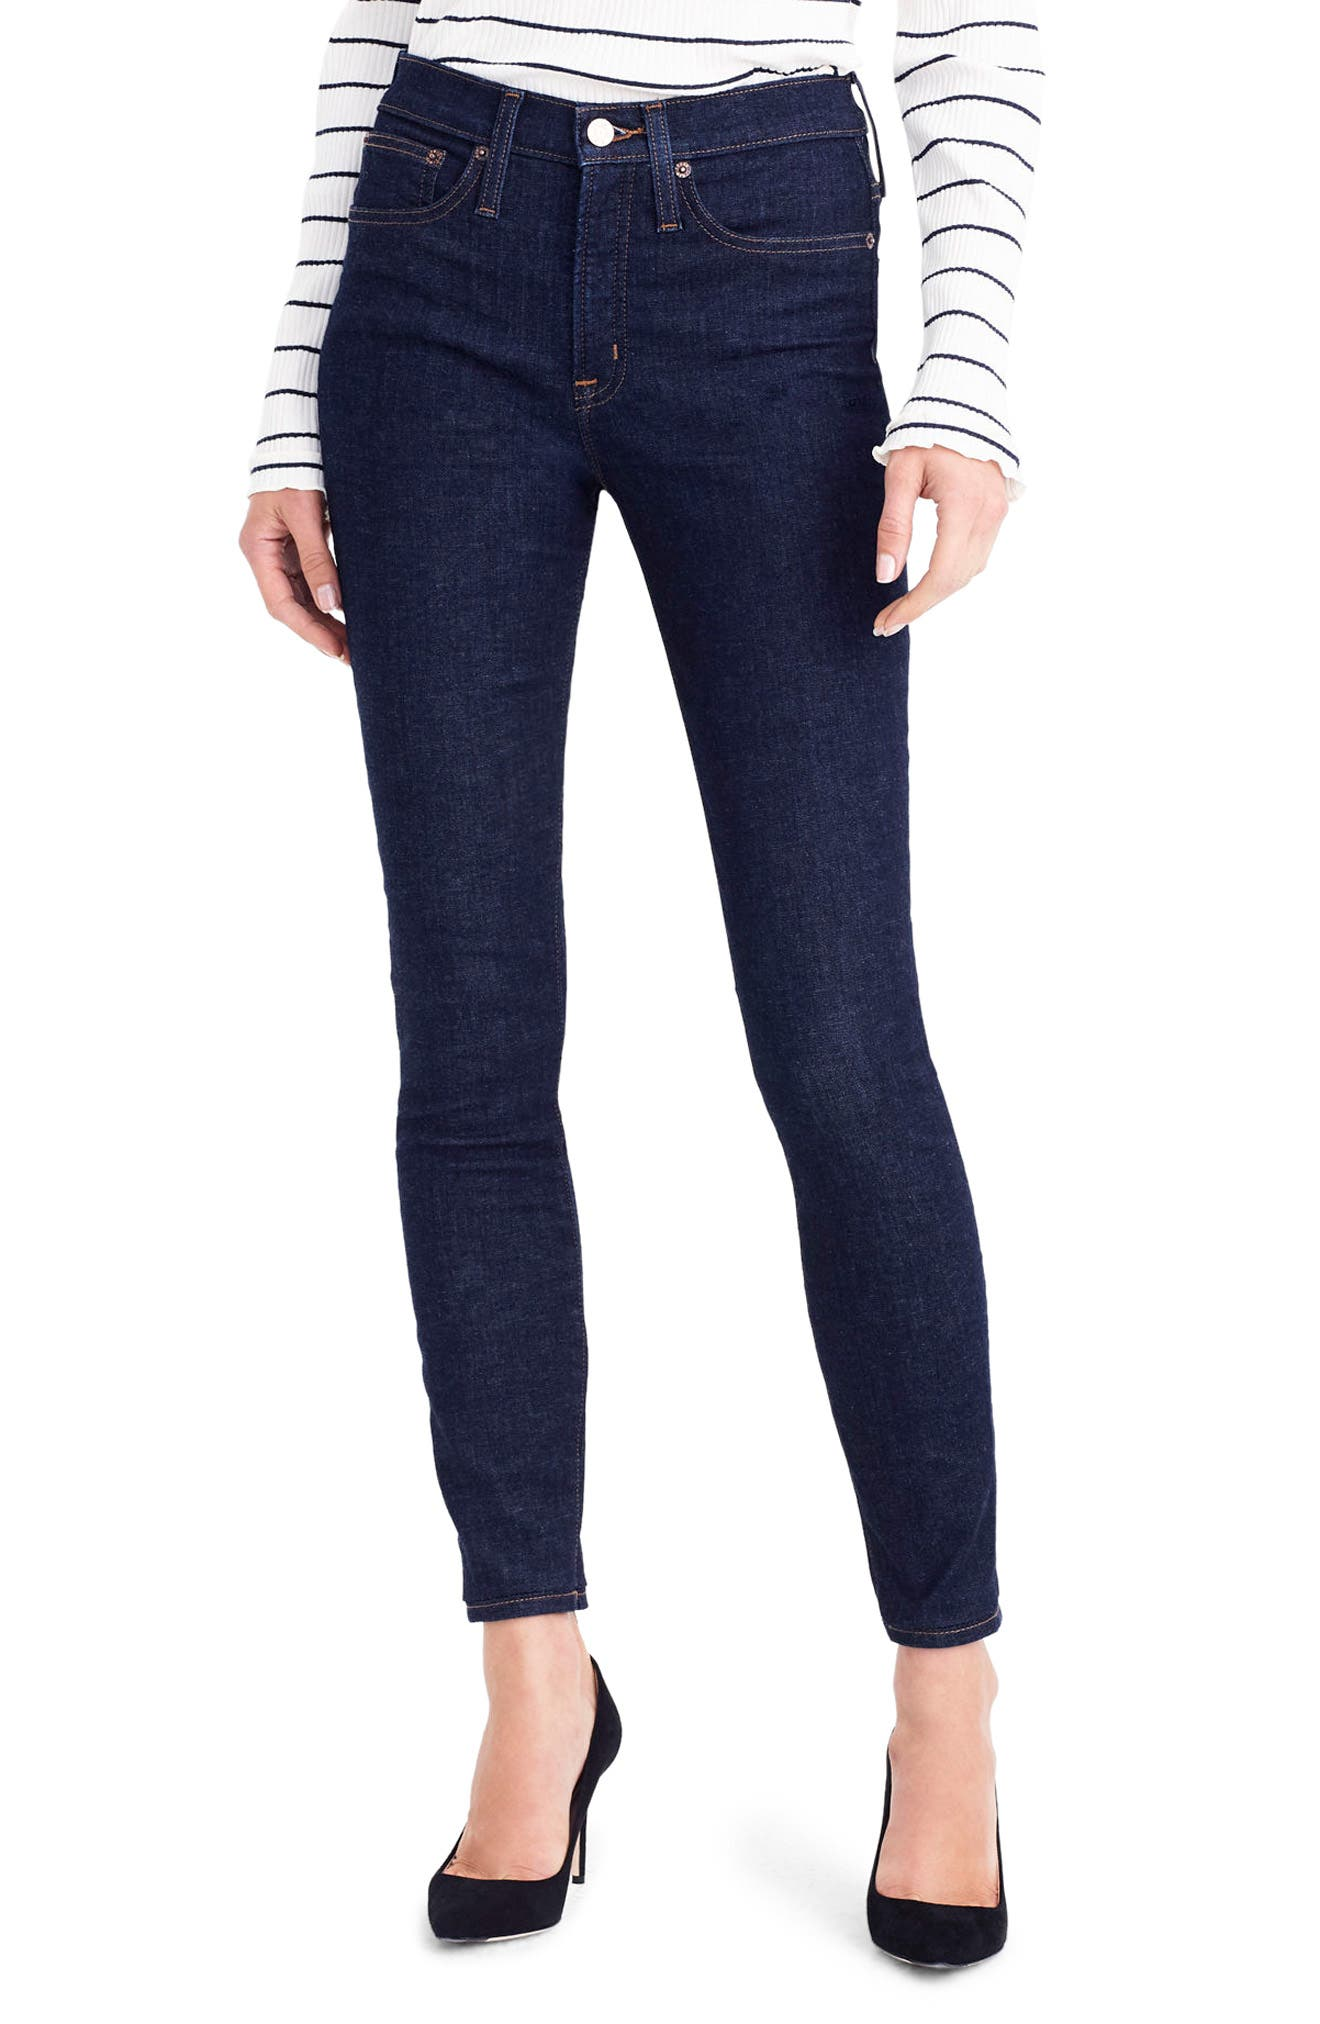 J.Crew Lookout High Rise Jeans (Classic Rinse)